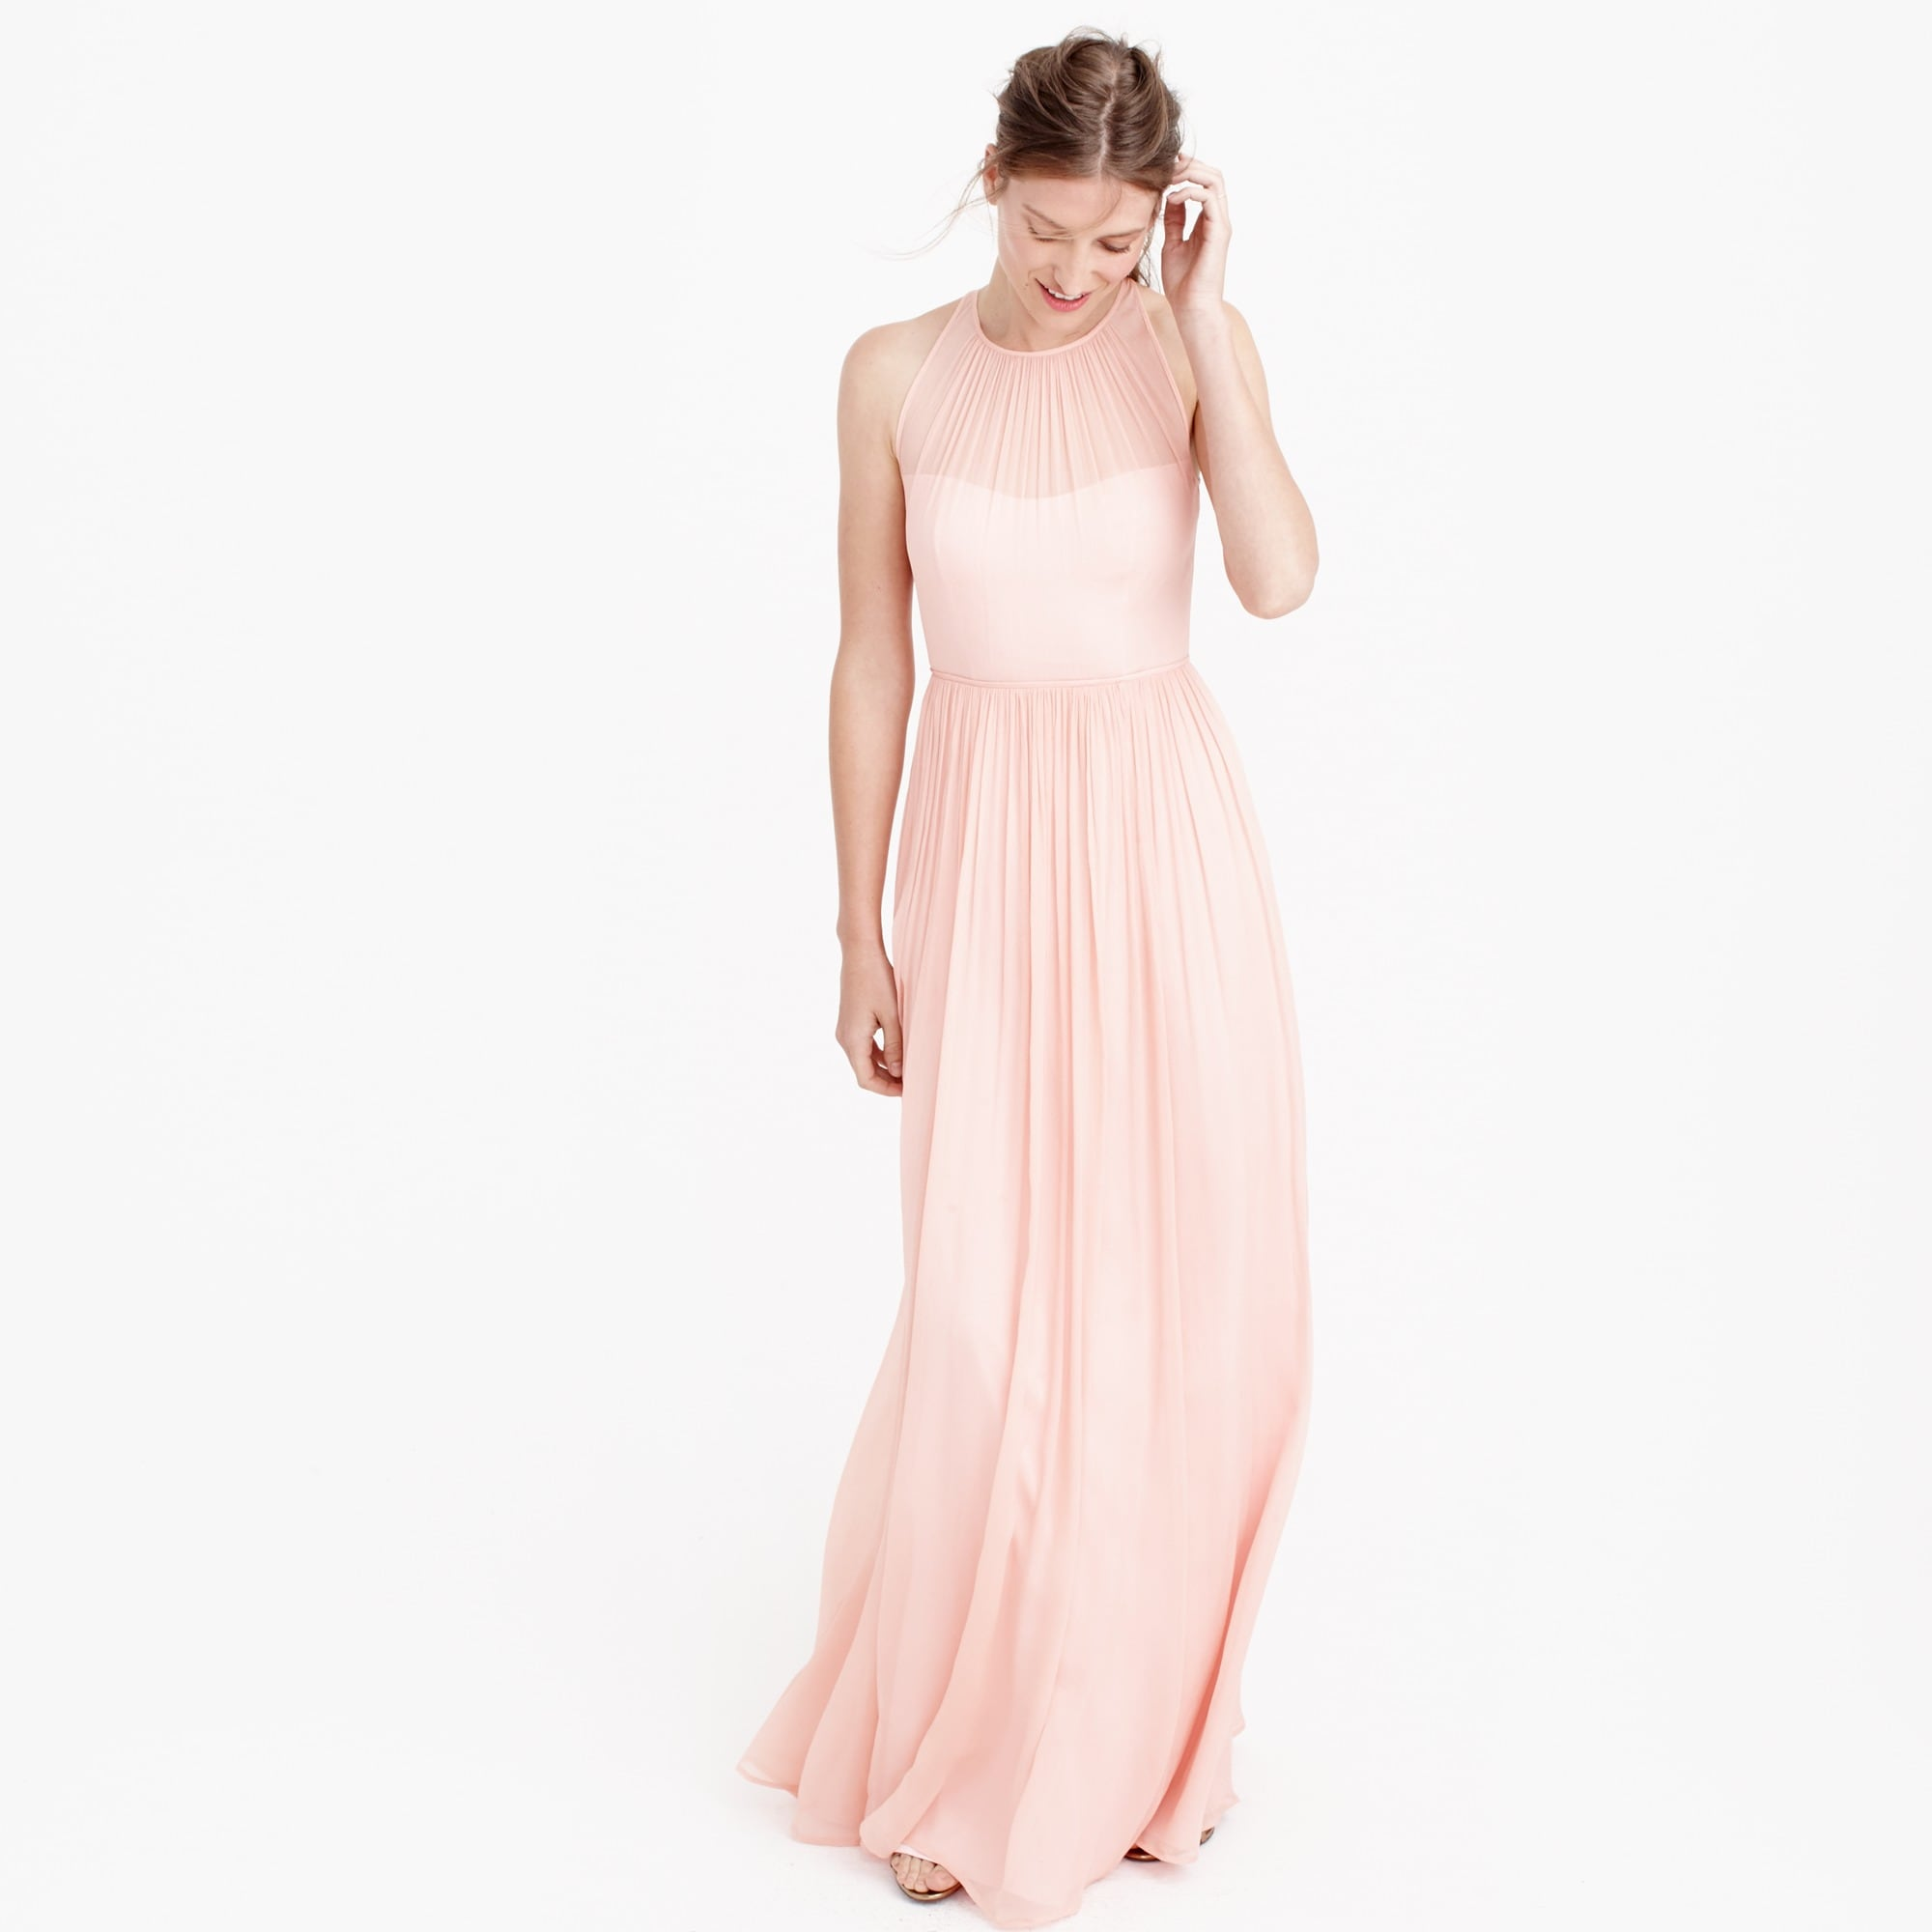 Megan long dress in silk chiffon